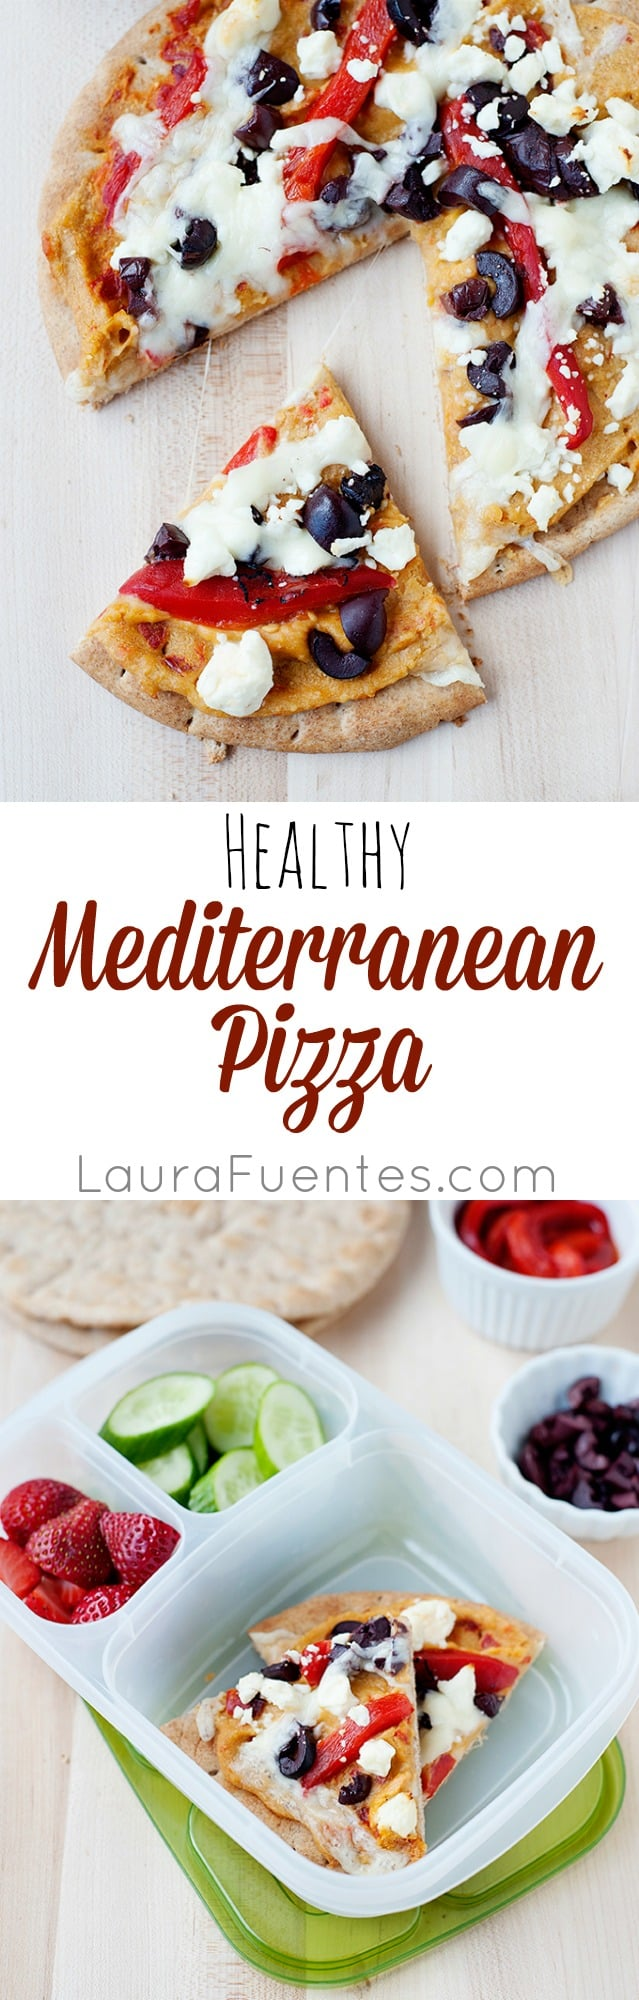 Mediterranean Hummus Pizza: Healthy and delicious pizzas made with hummus and all your favorite toppings.